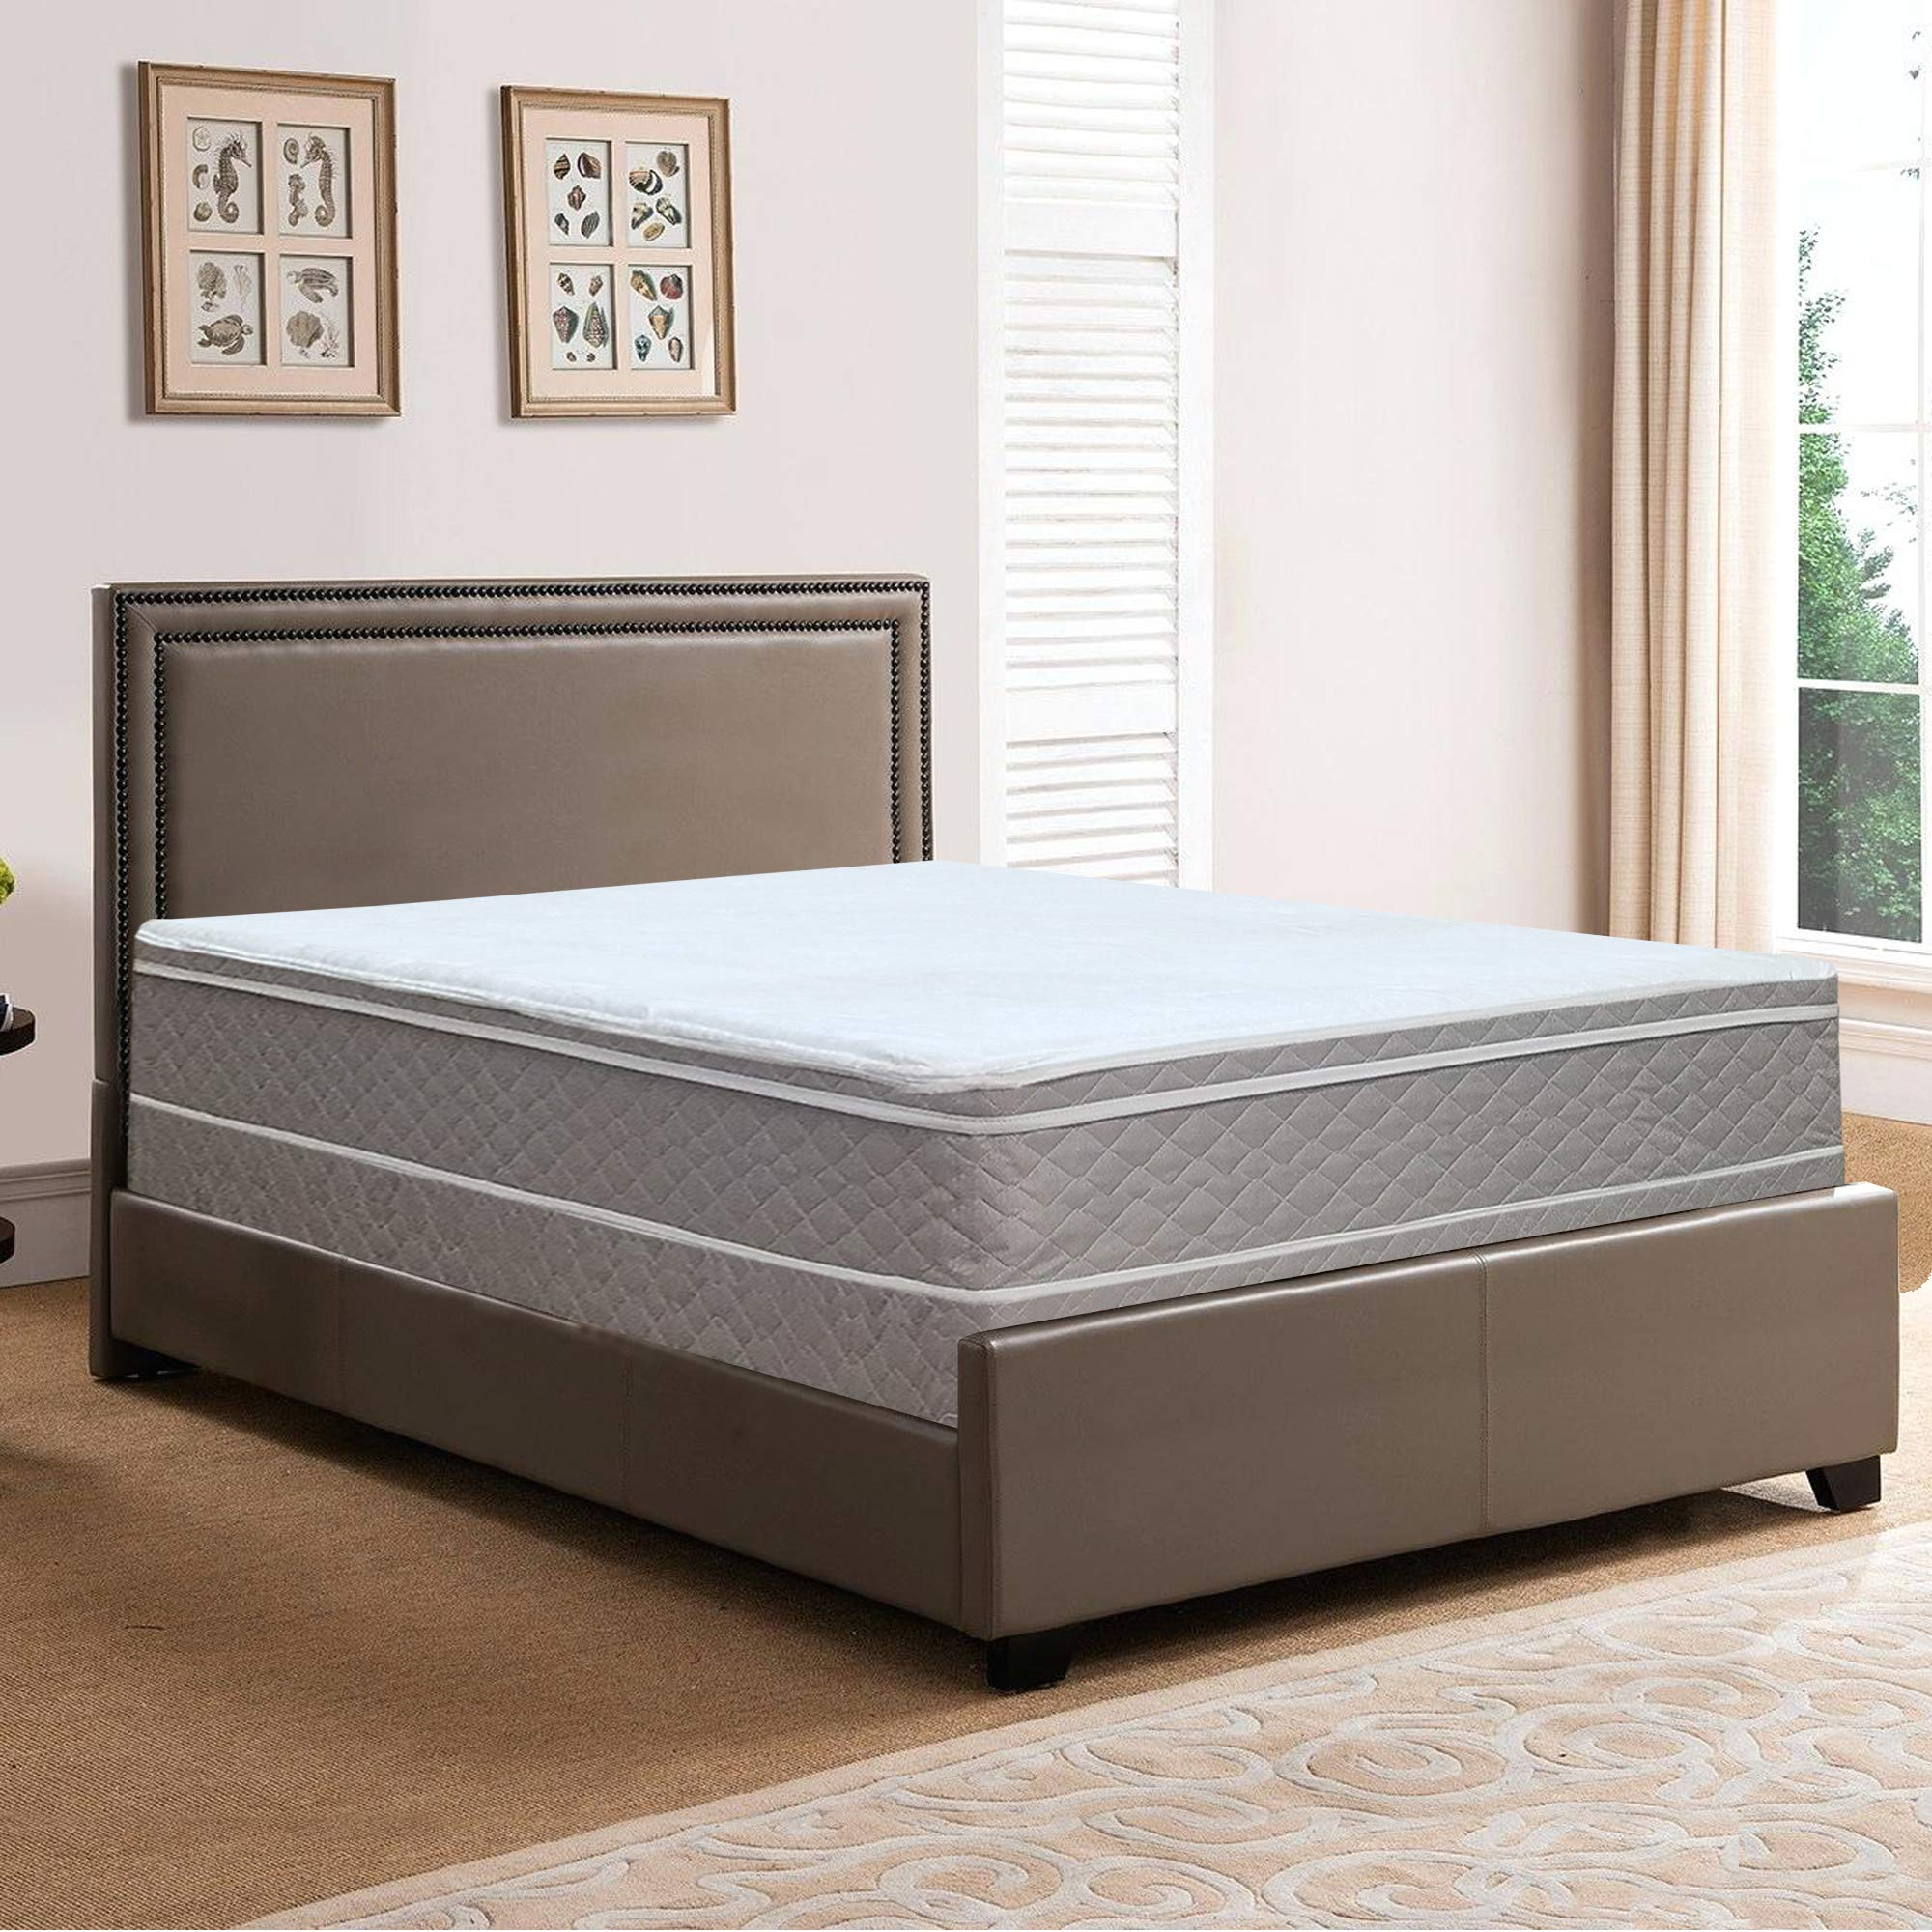 Spring Solution Plush Mattress, Twin XL Size by Spring Solution